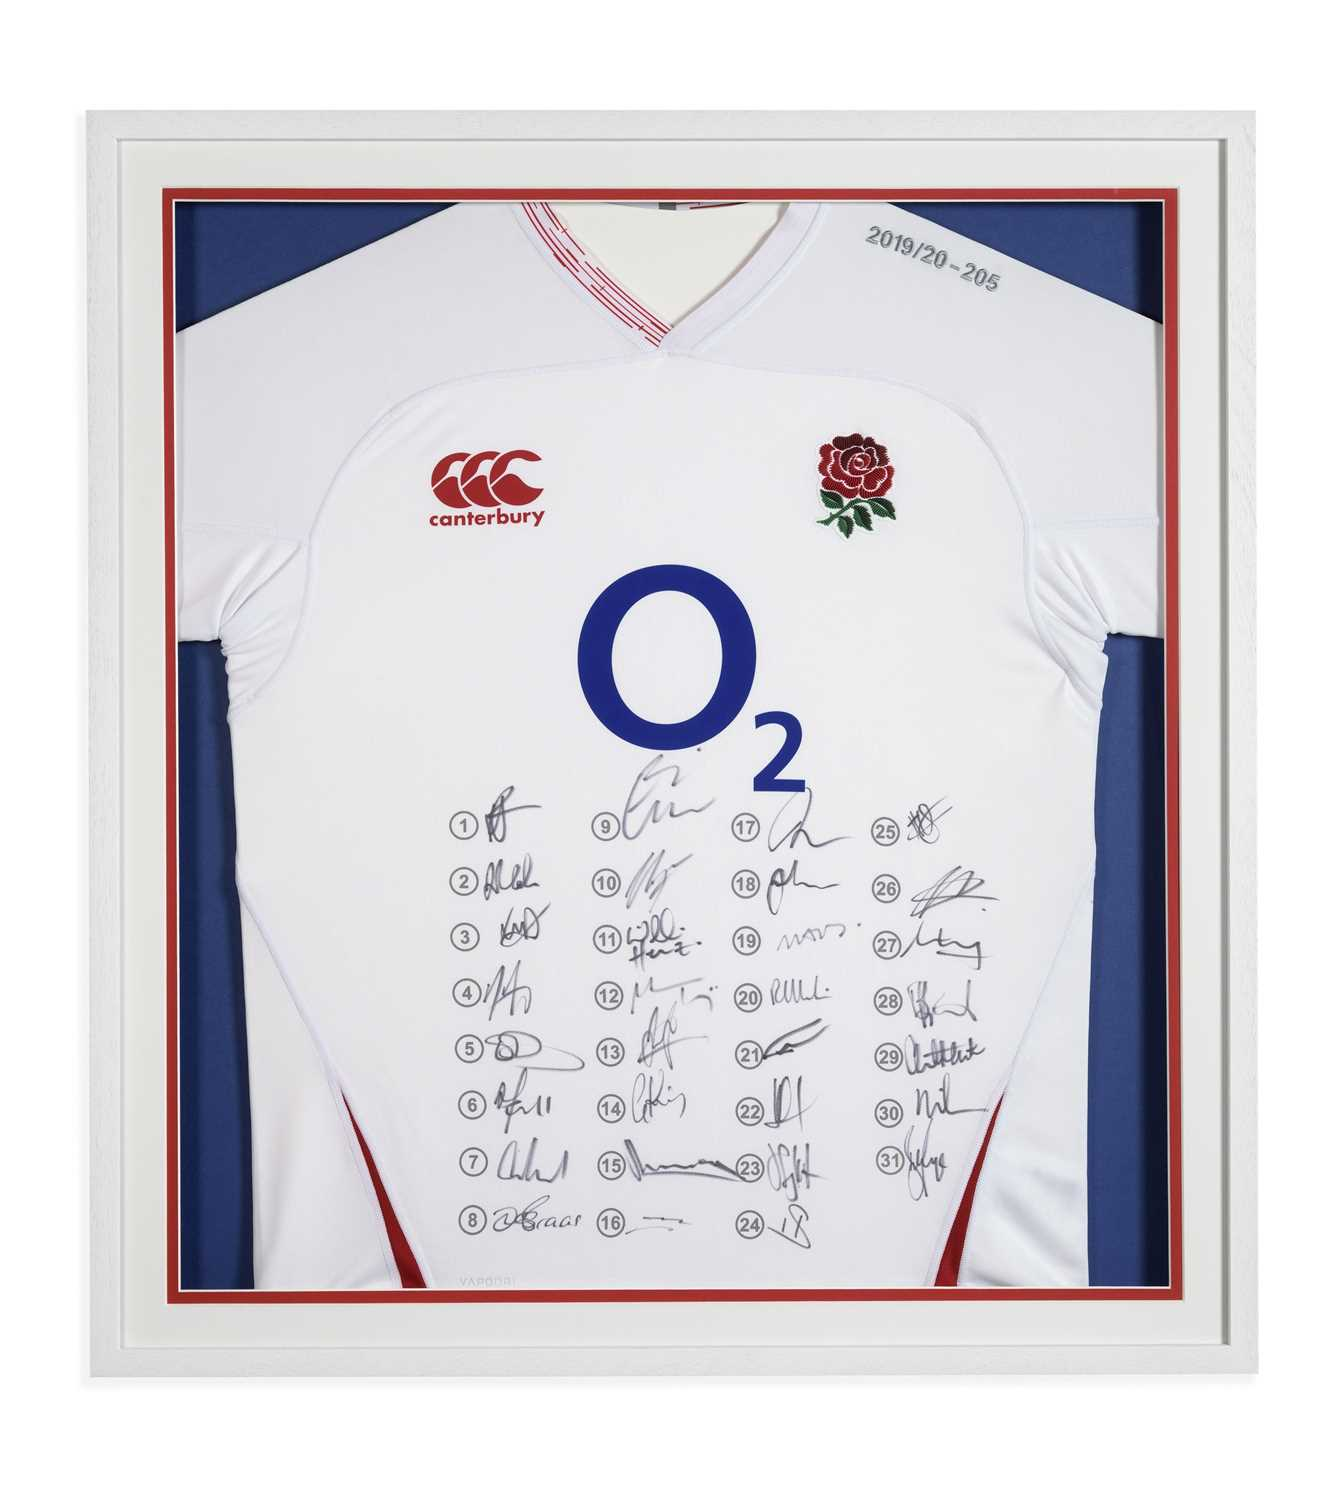 England Rugby Shirt Signed by the 2020 Team Official framed current England Rugby shirt which has